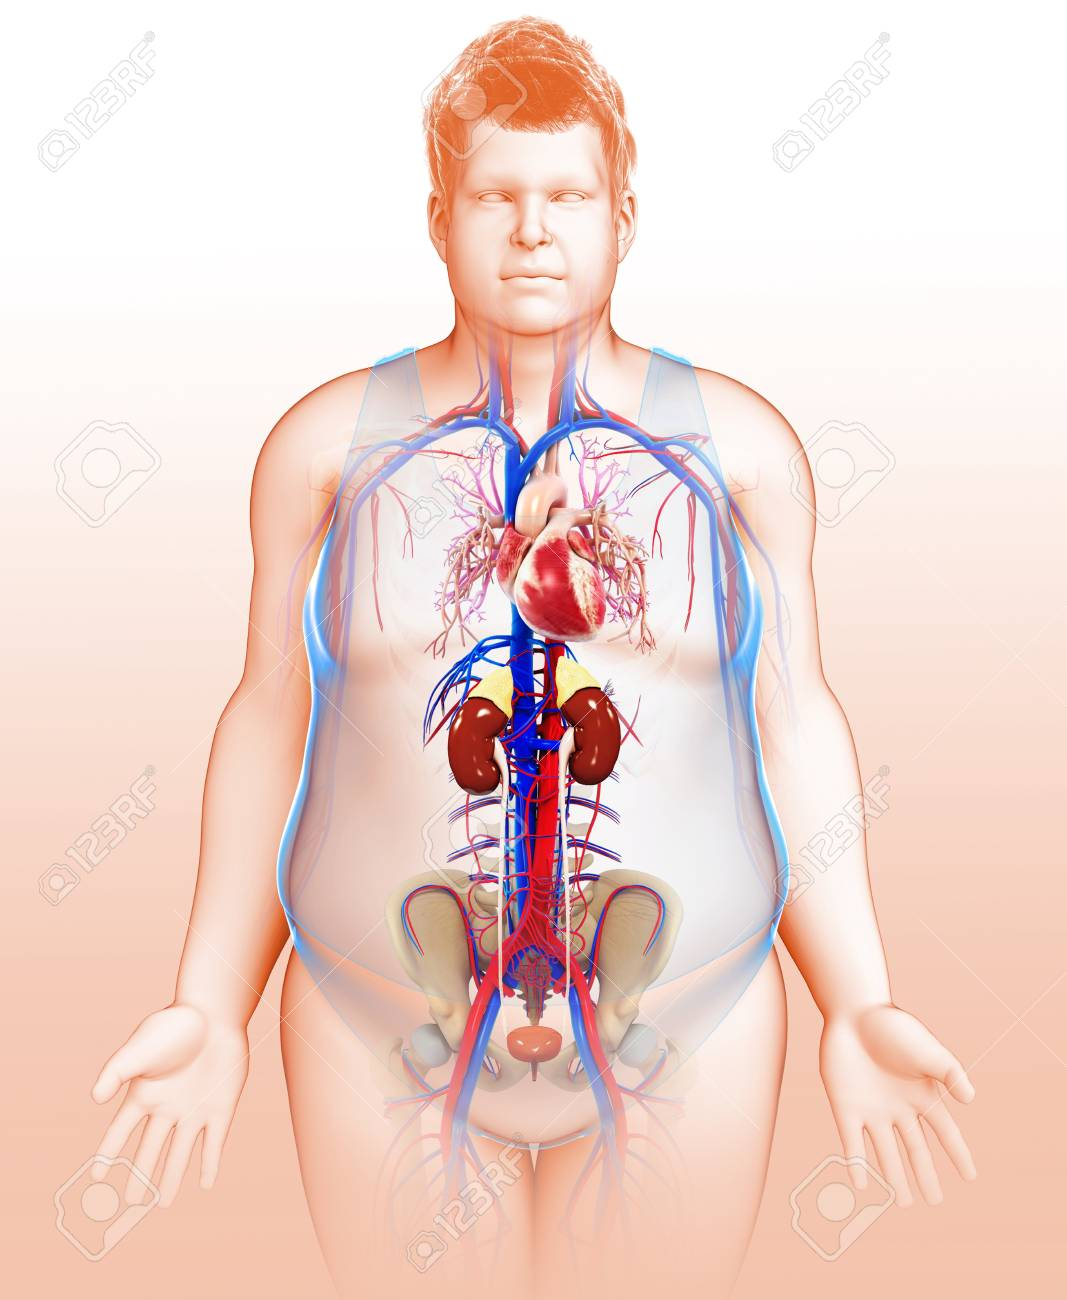 Human Internal Organs, Illustration Stock Photo, Picture And Royalty ...